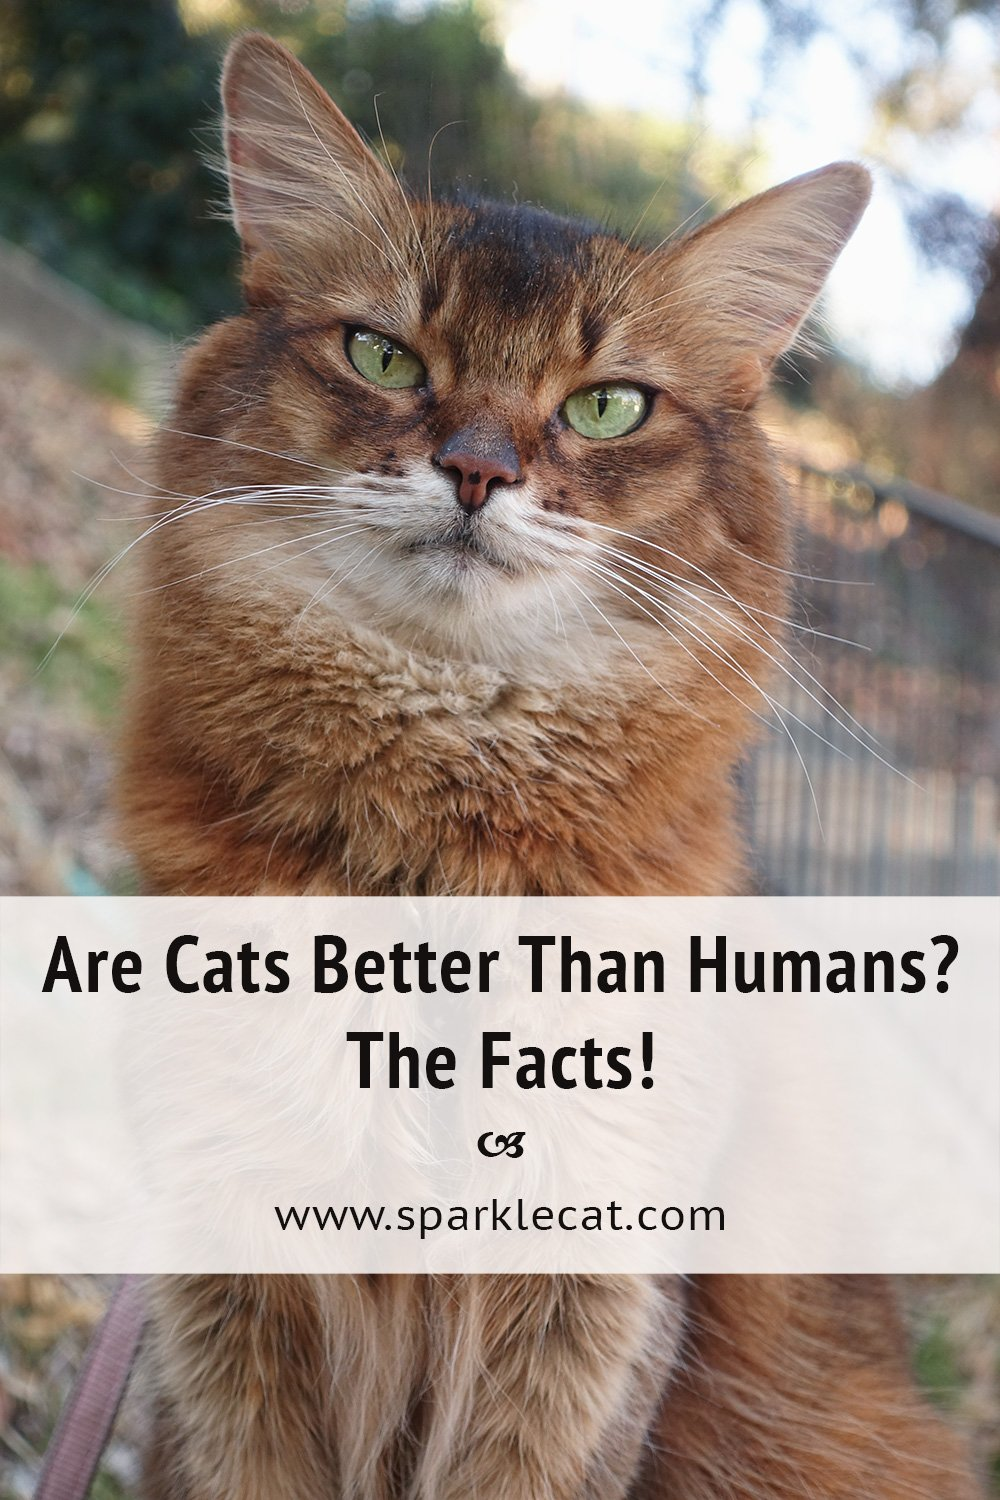 Cat Facts Vs. Human Facts: Who Wins?